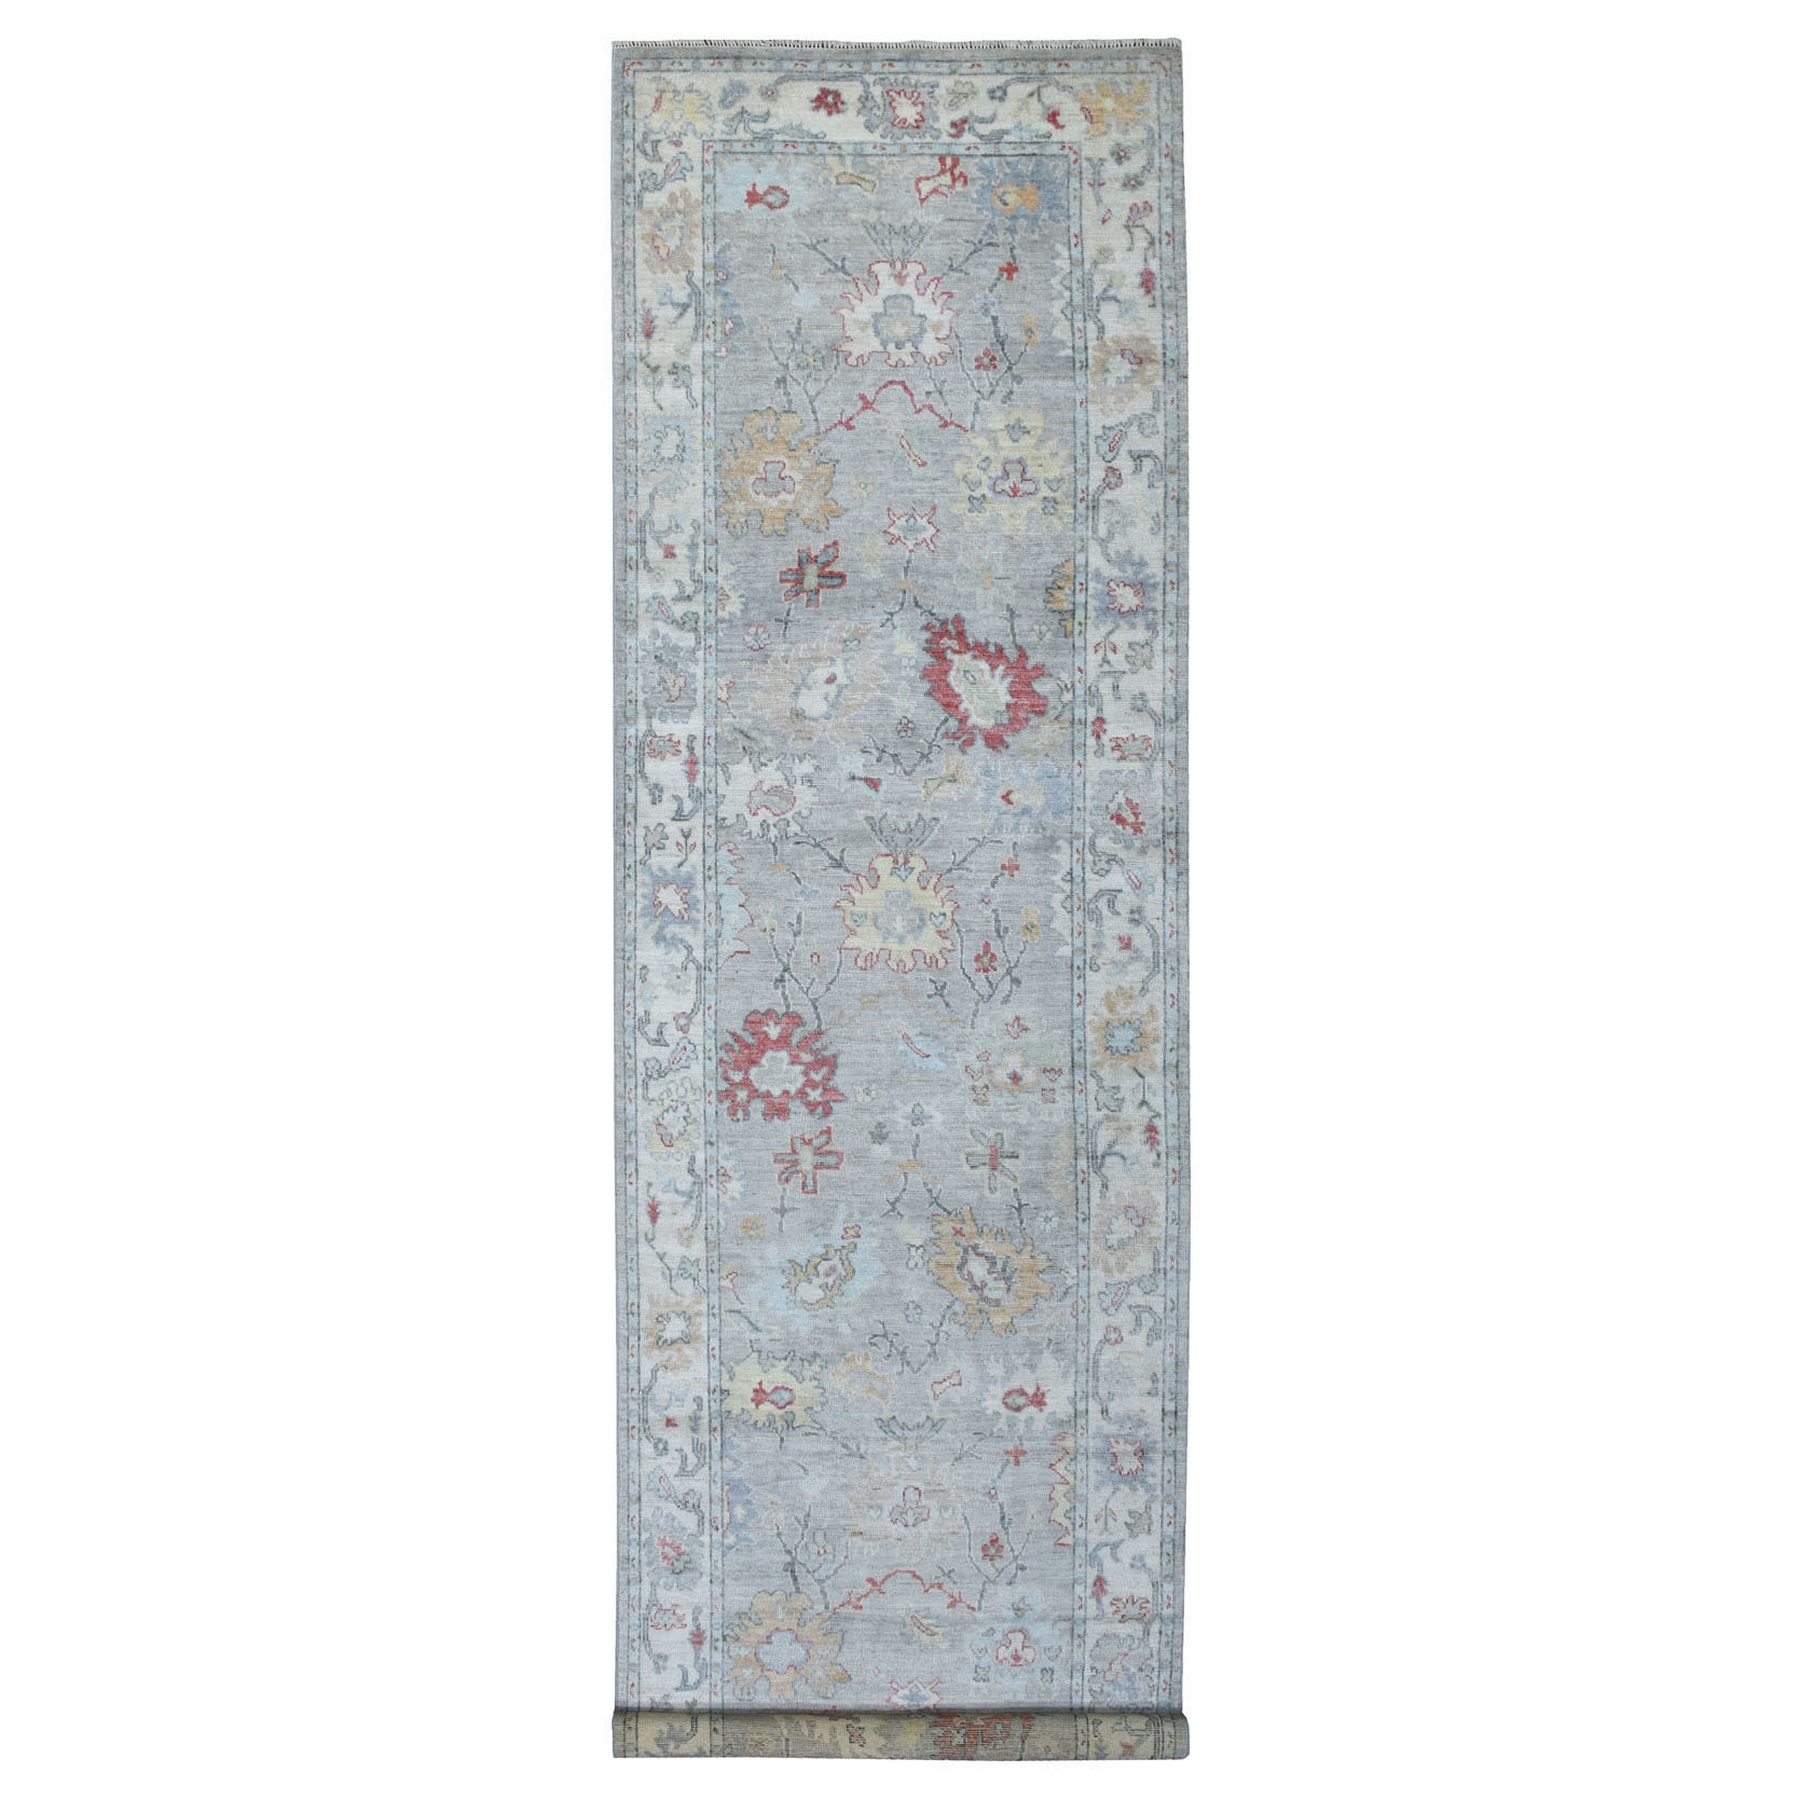 Agra And Turkish Collection Hand Knotted Grey Rug No: 1137142